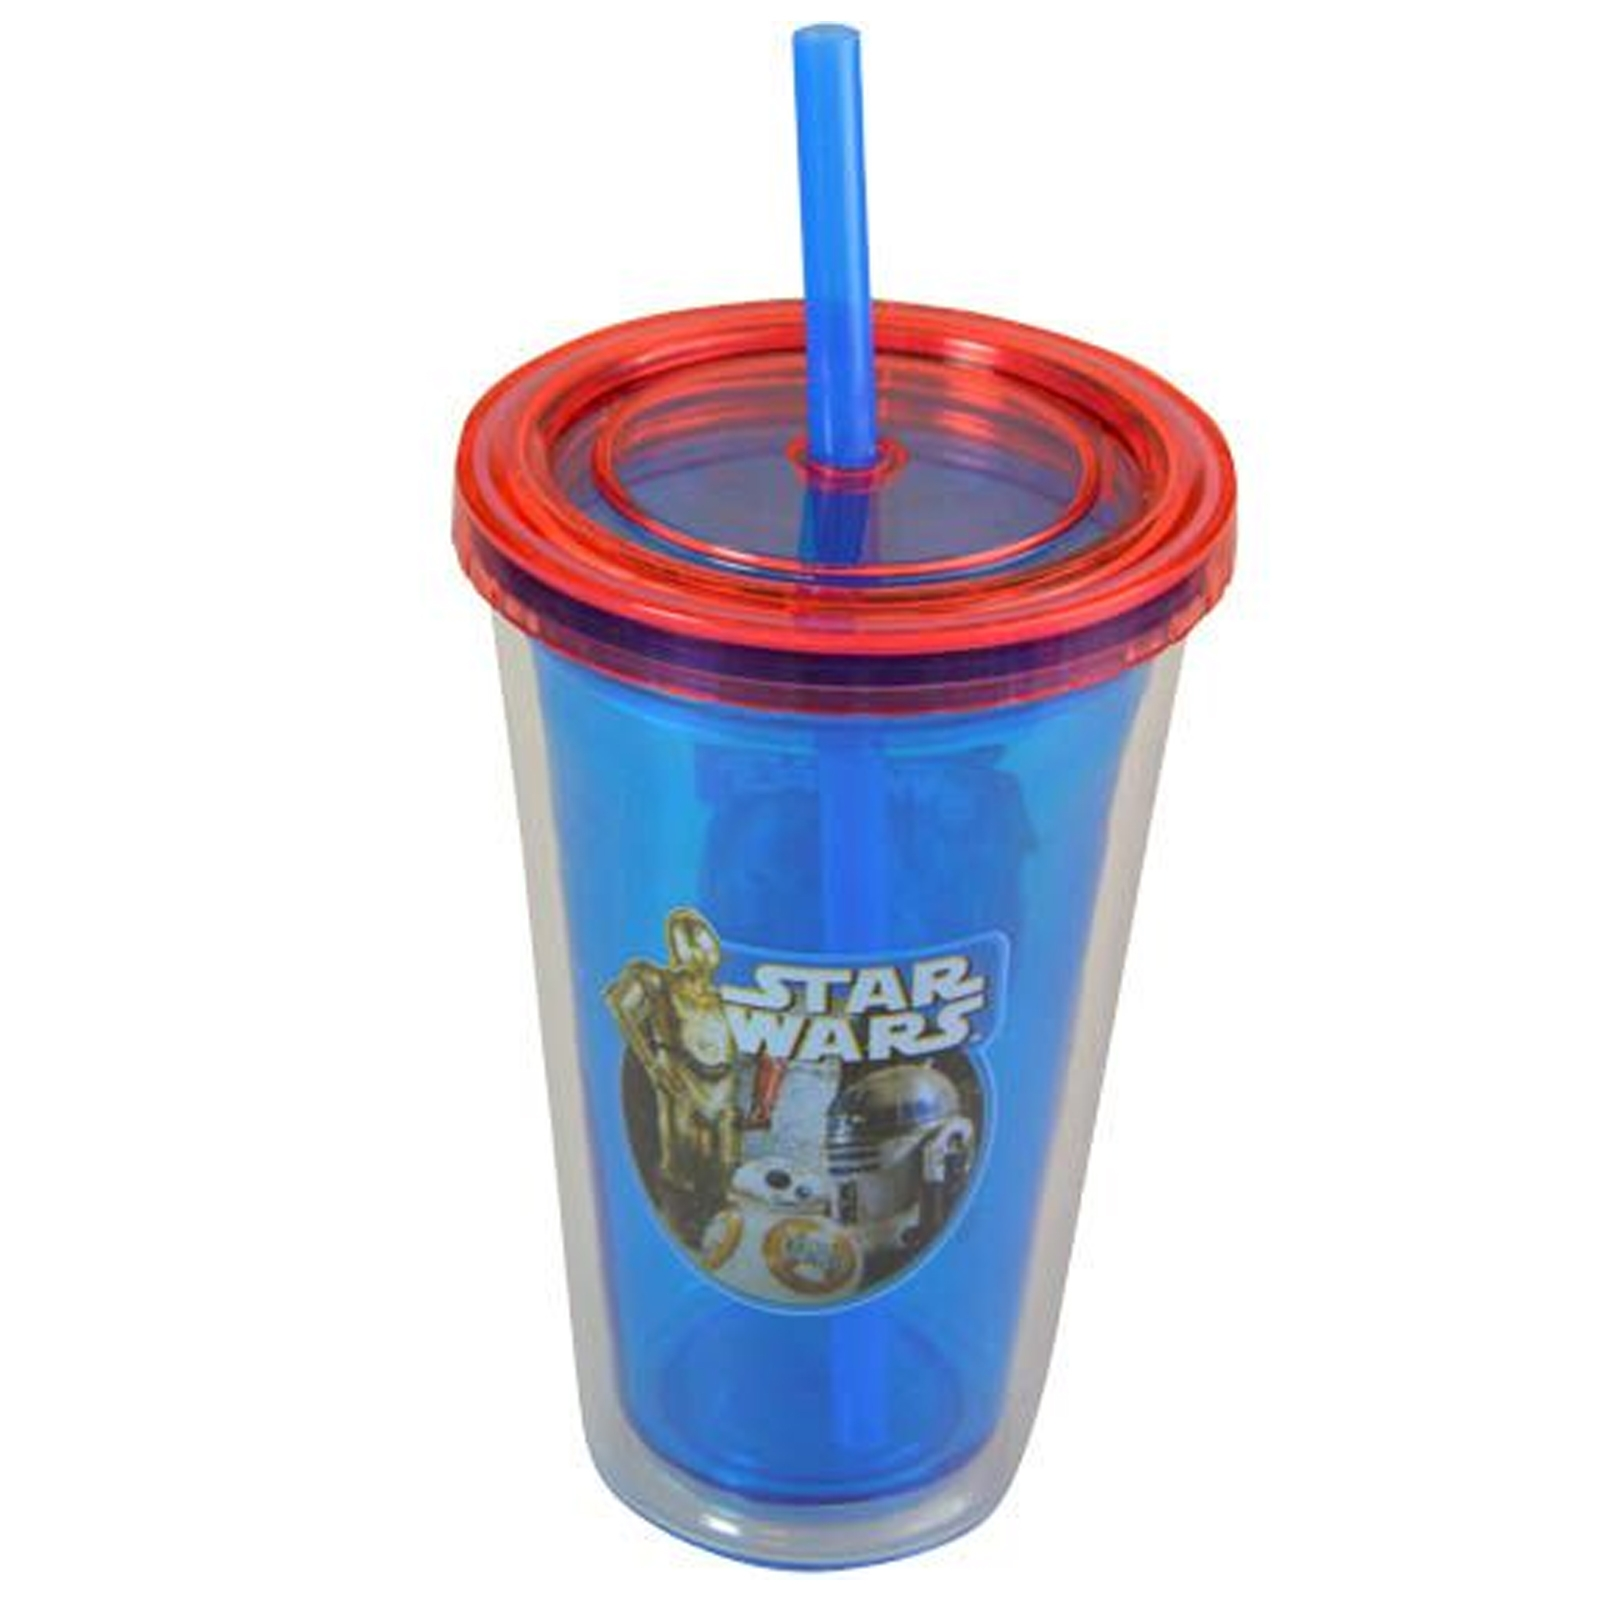 Star Wars Kids and Boys 12 Ounce Fun On the Go Travel Water Bottle Tumbler with Straw